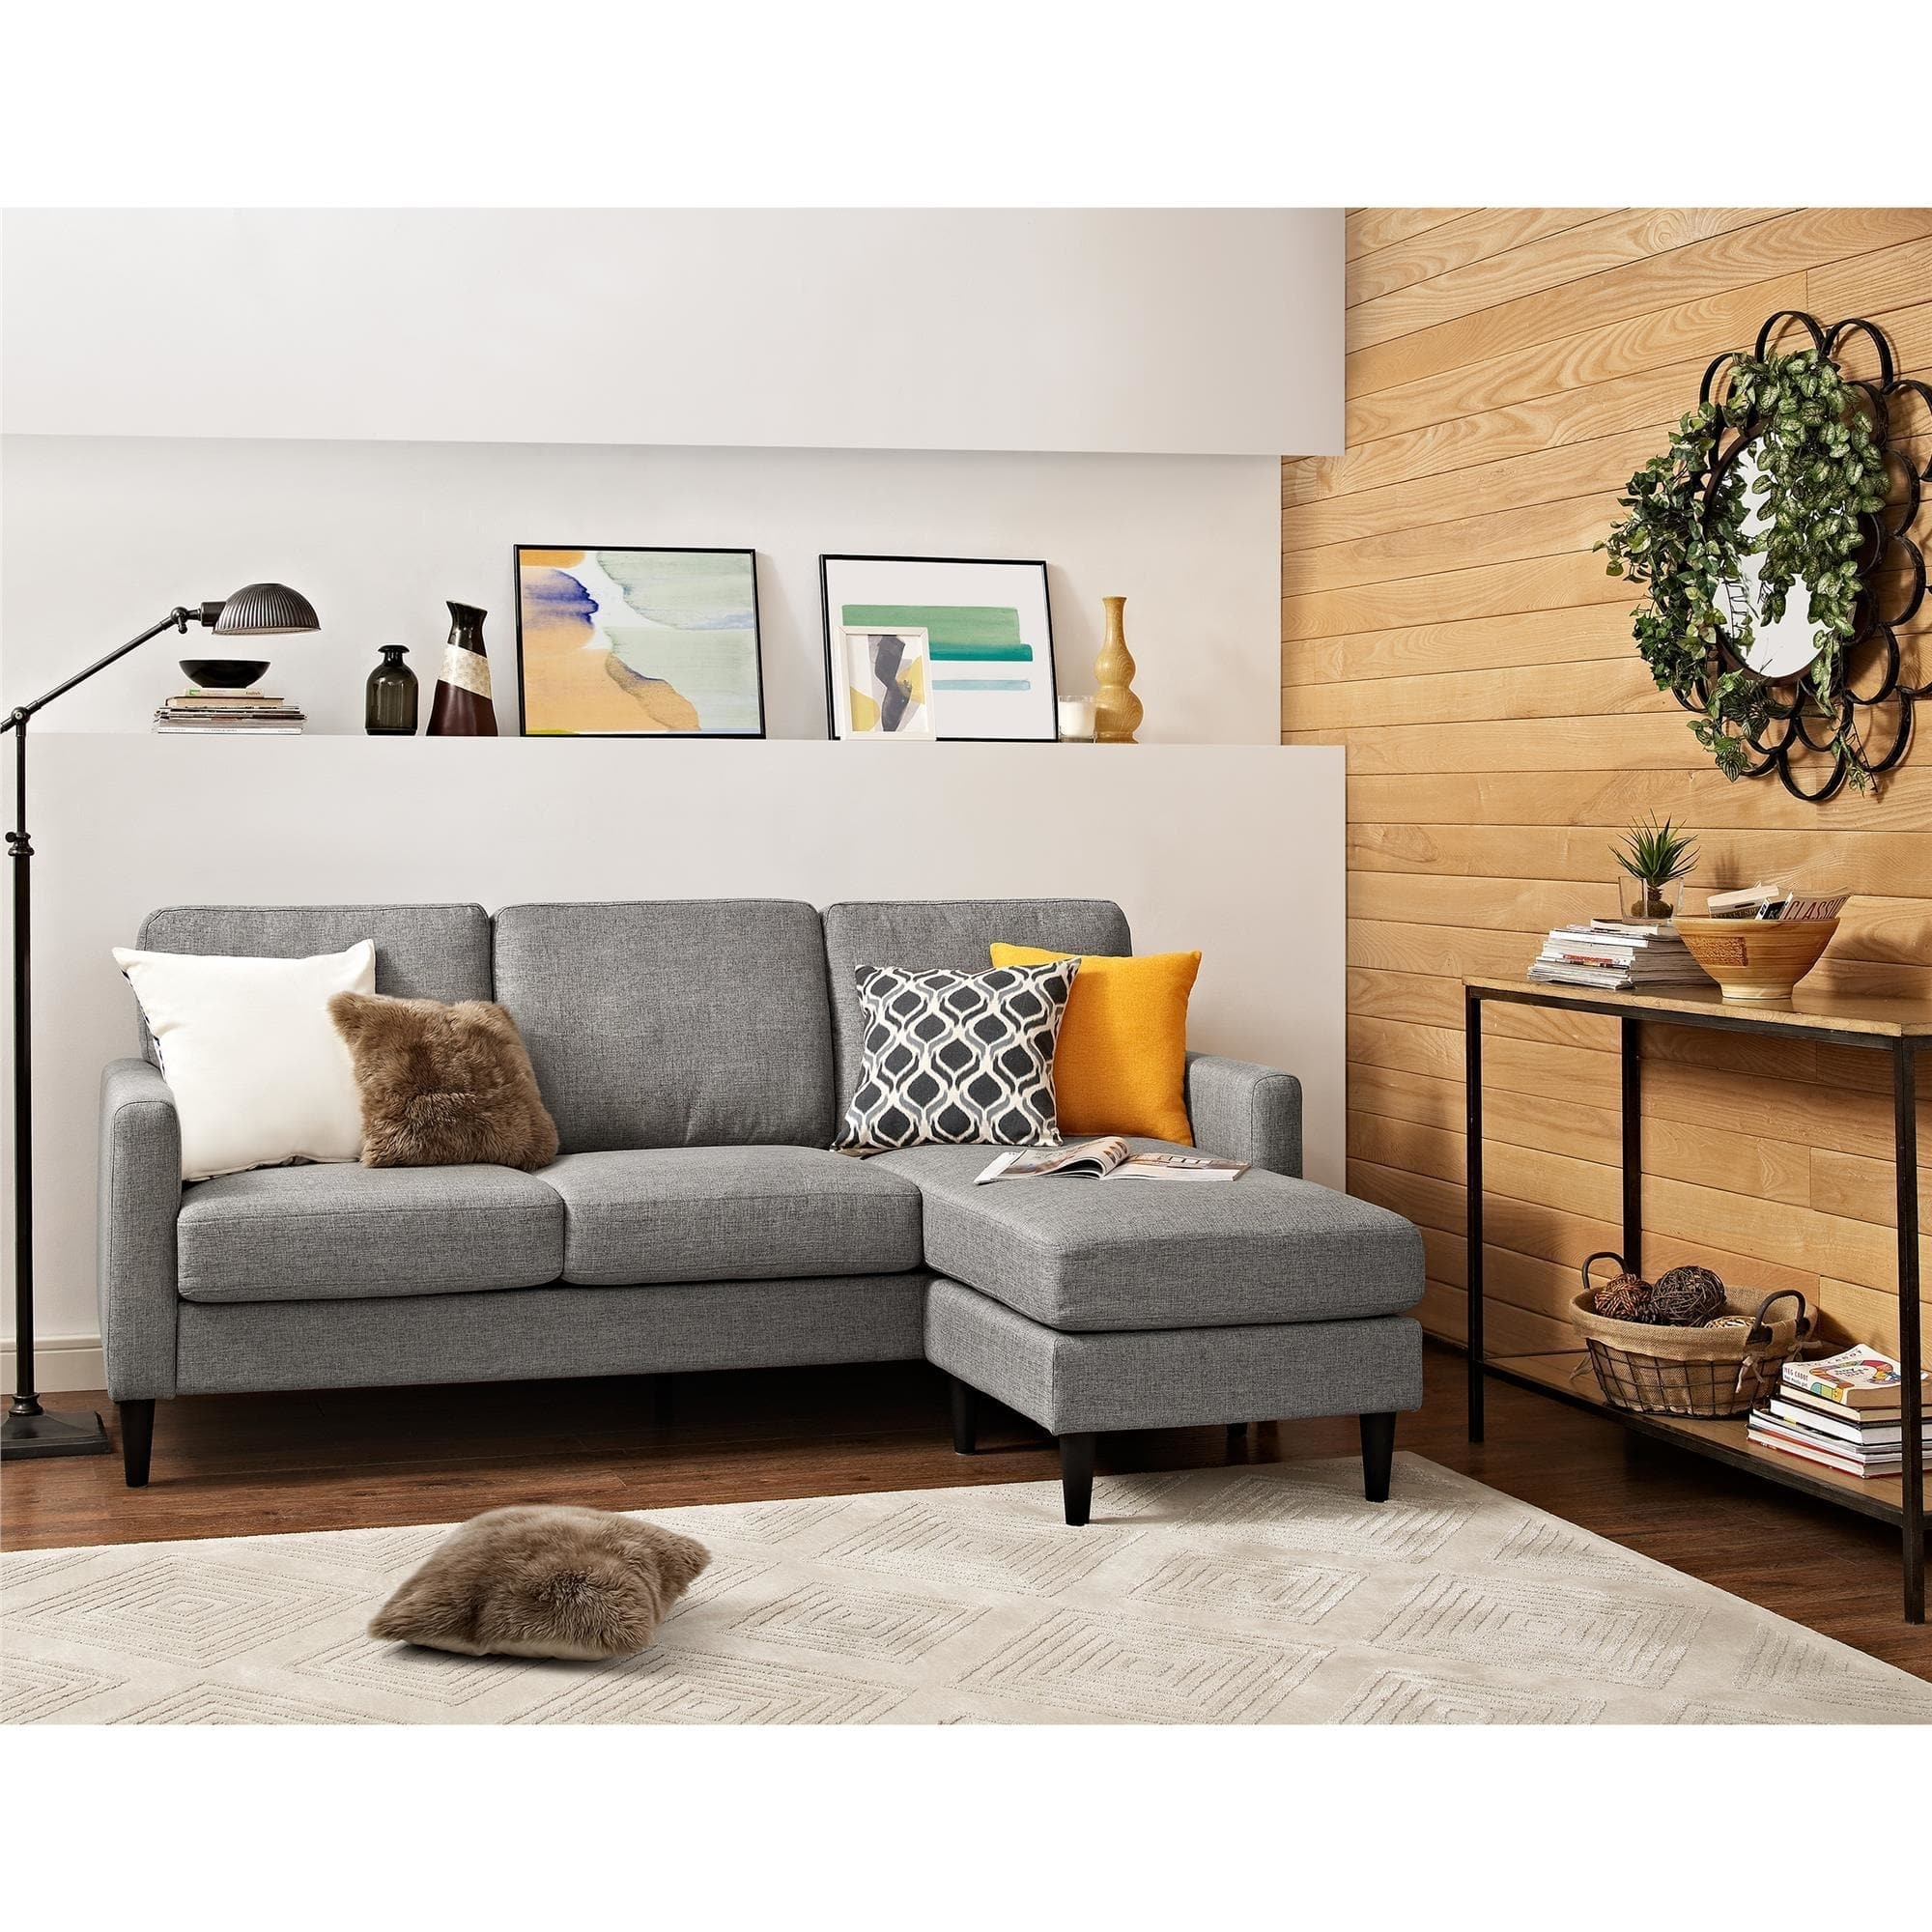 Dorel Living Kaci Grey Sectional Sofa – Free Shipping On Orders Over Throughout Overstock Sectional Sofas (View 2 of 10)